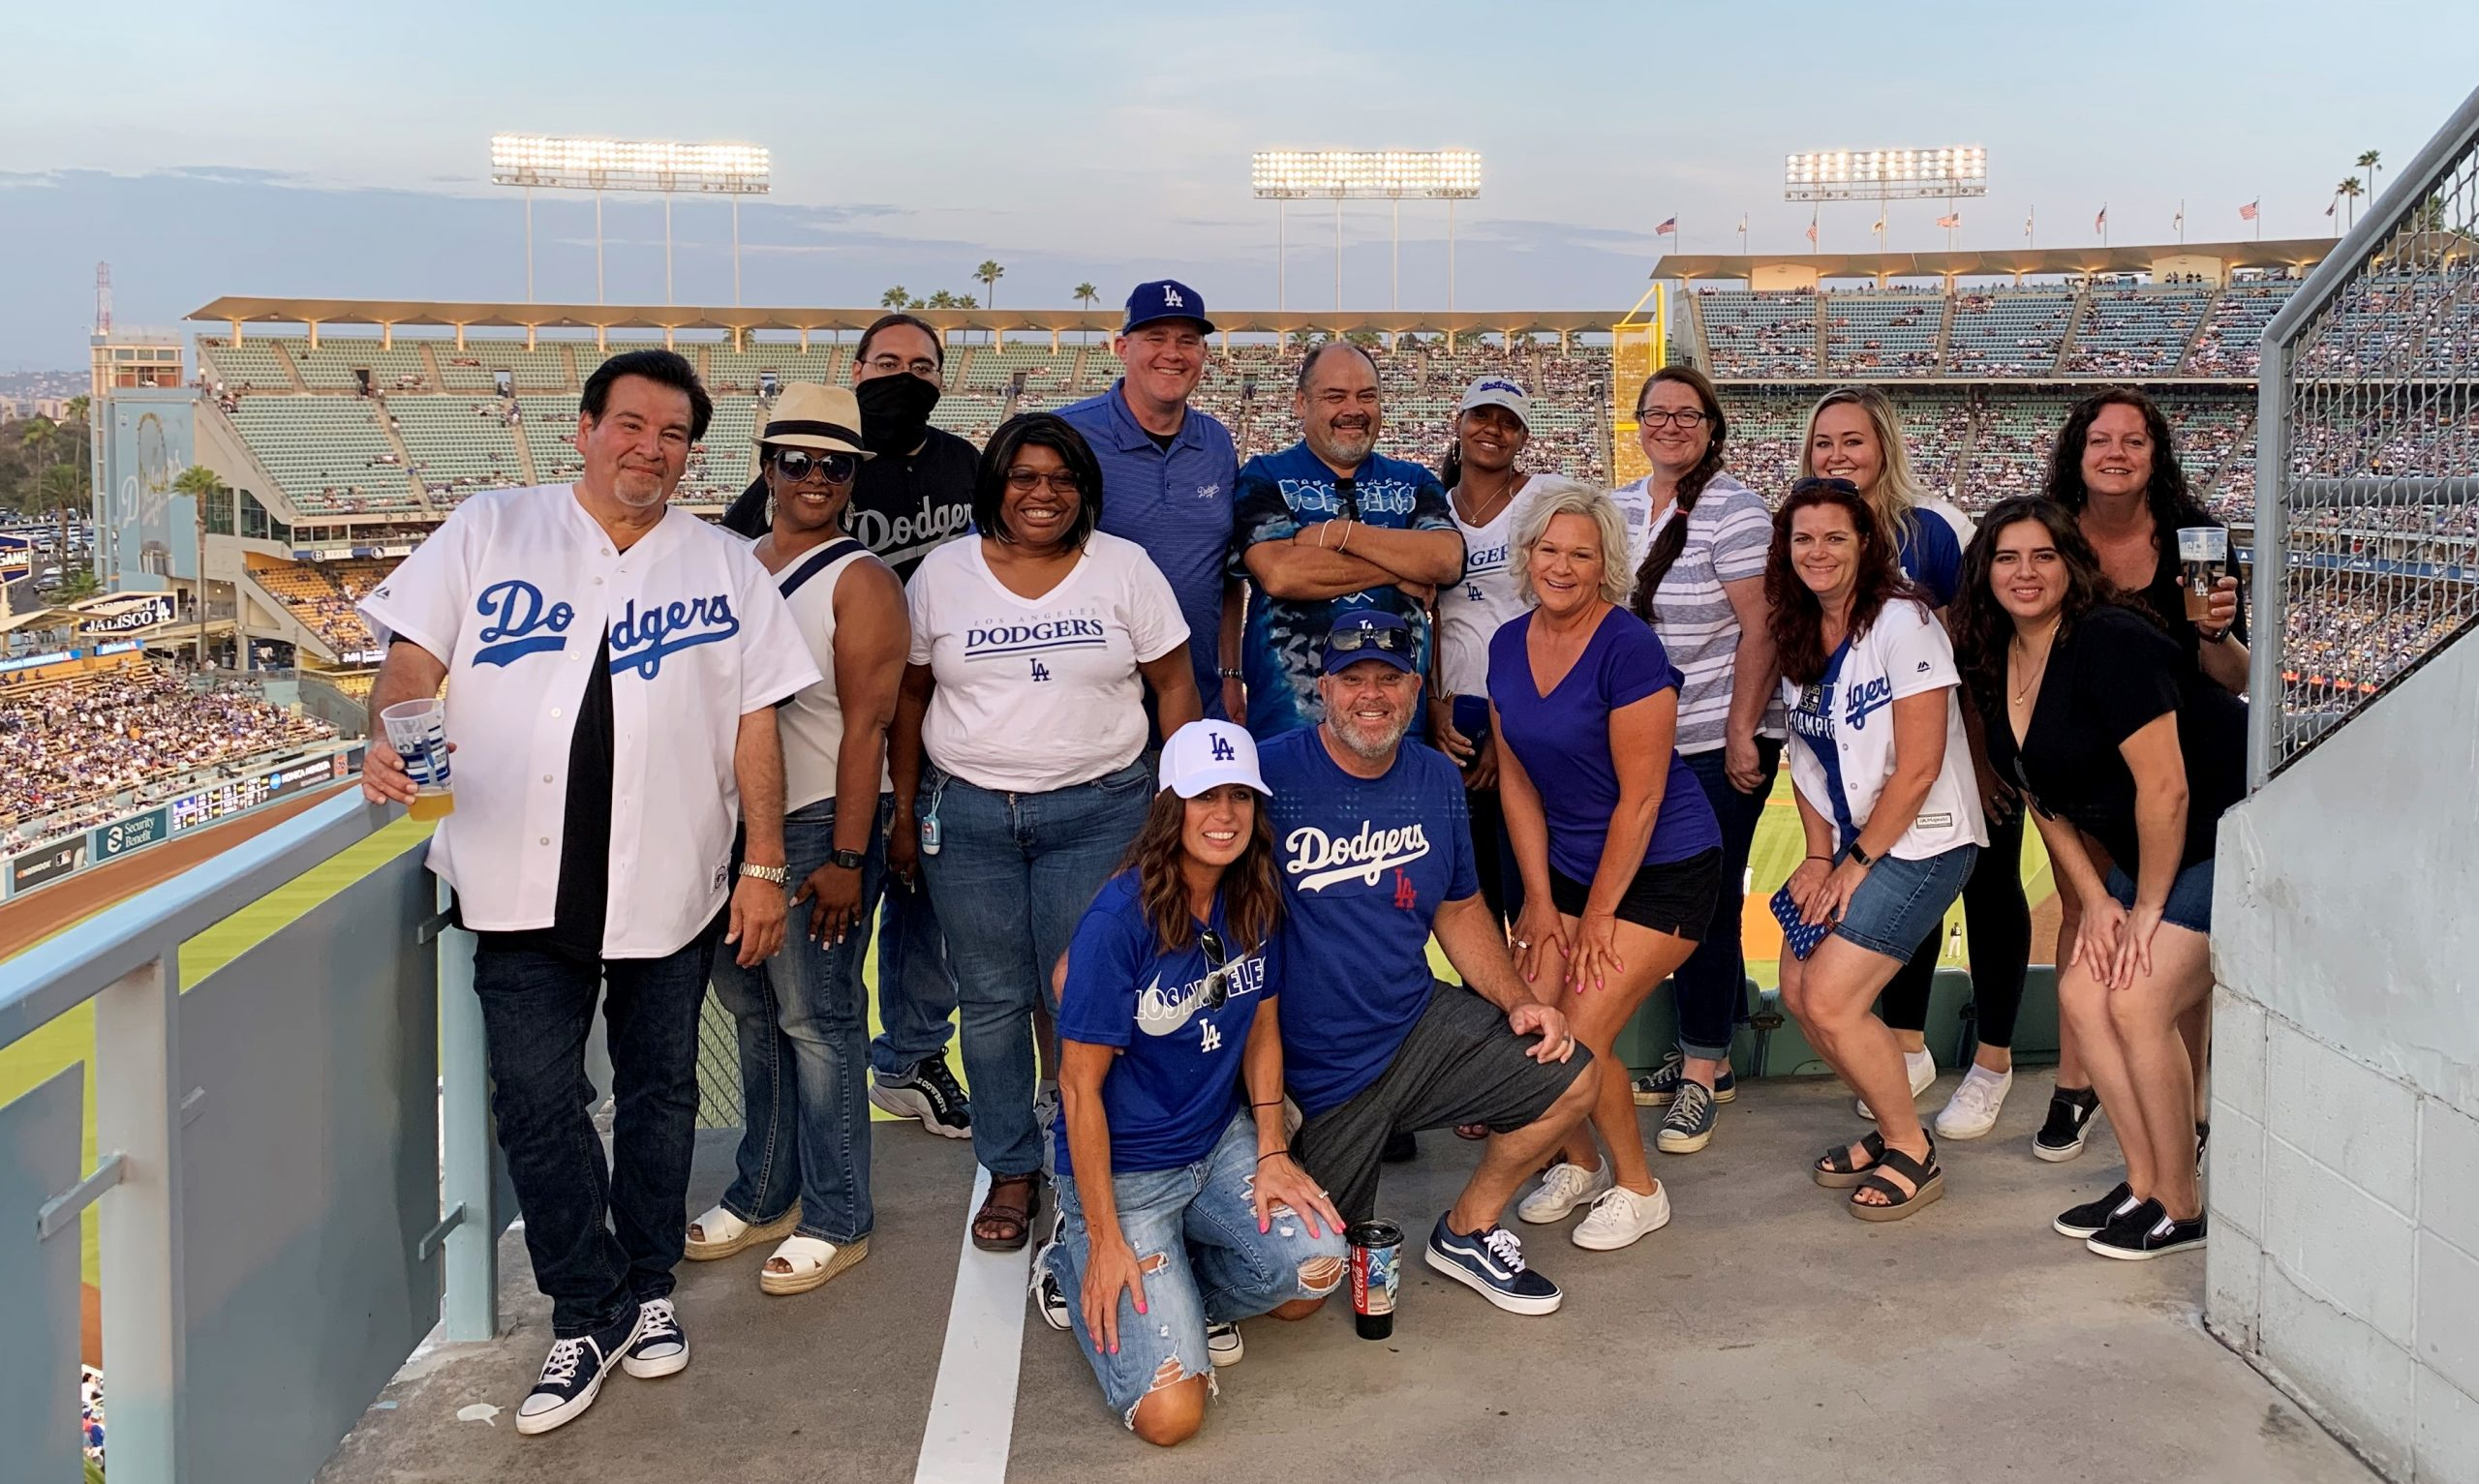 School staff and guests at Dodger Stadium.